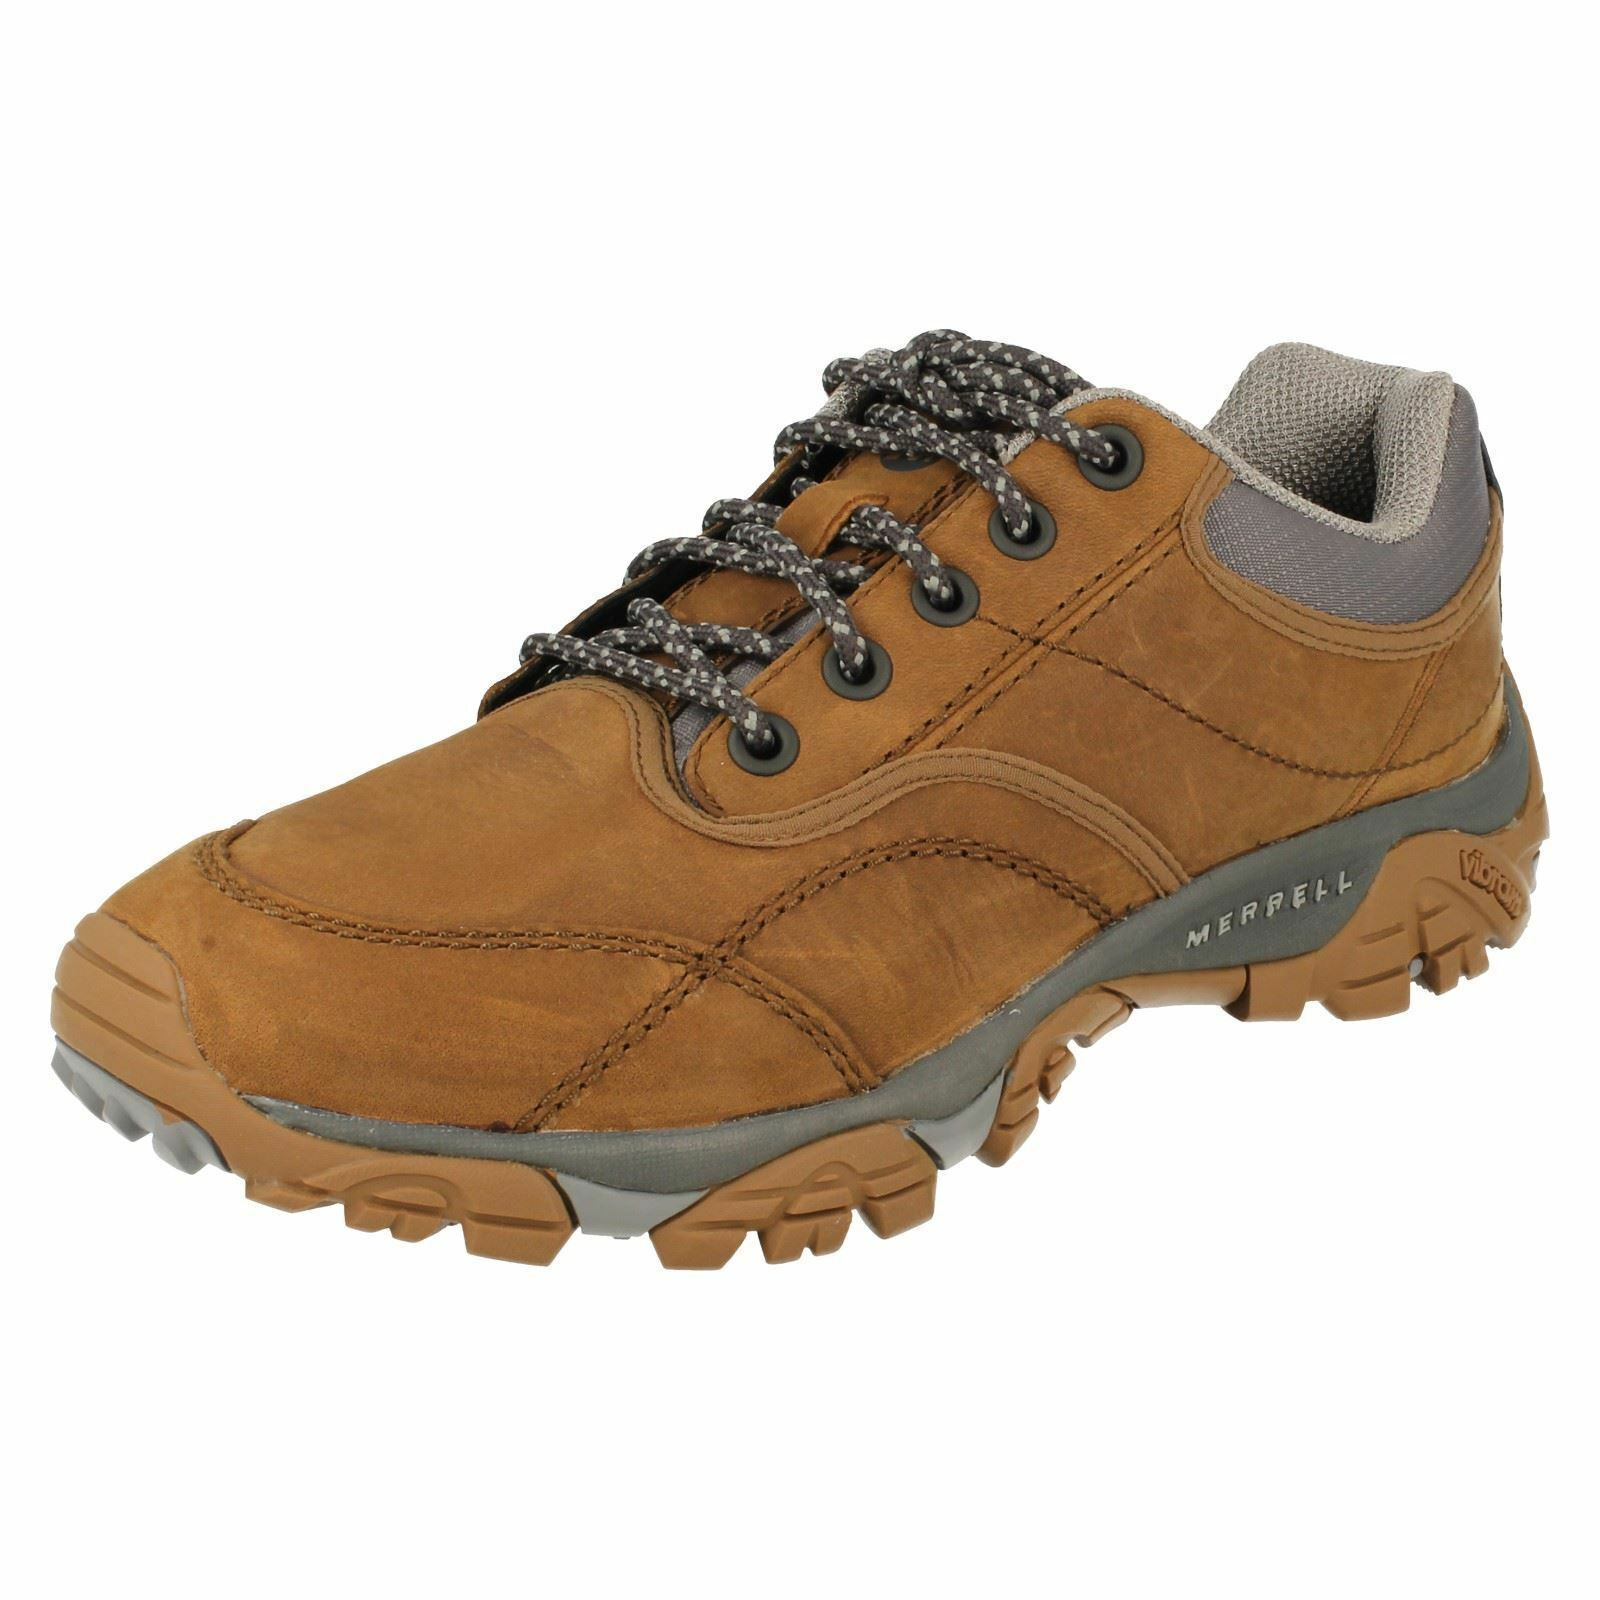 MENS MERRELL MOAB ROVER LACE UP LEATHER OUTDOOR WALKING HIKING TRAINERS SHOES